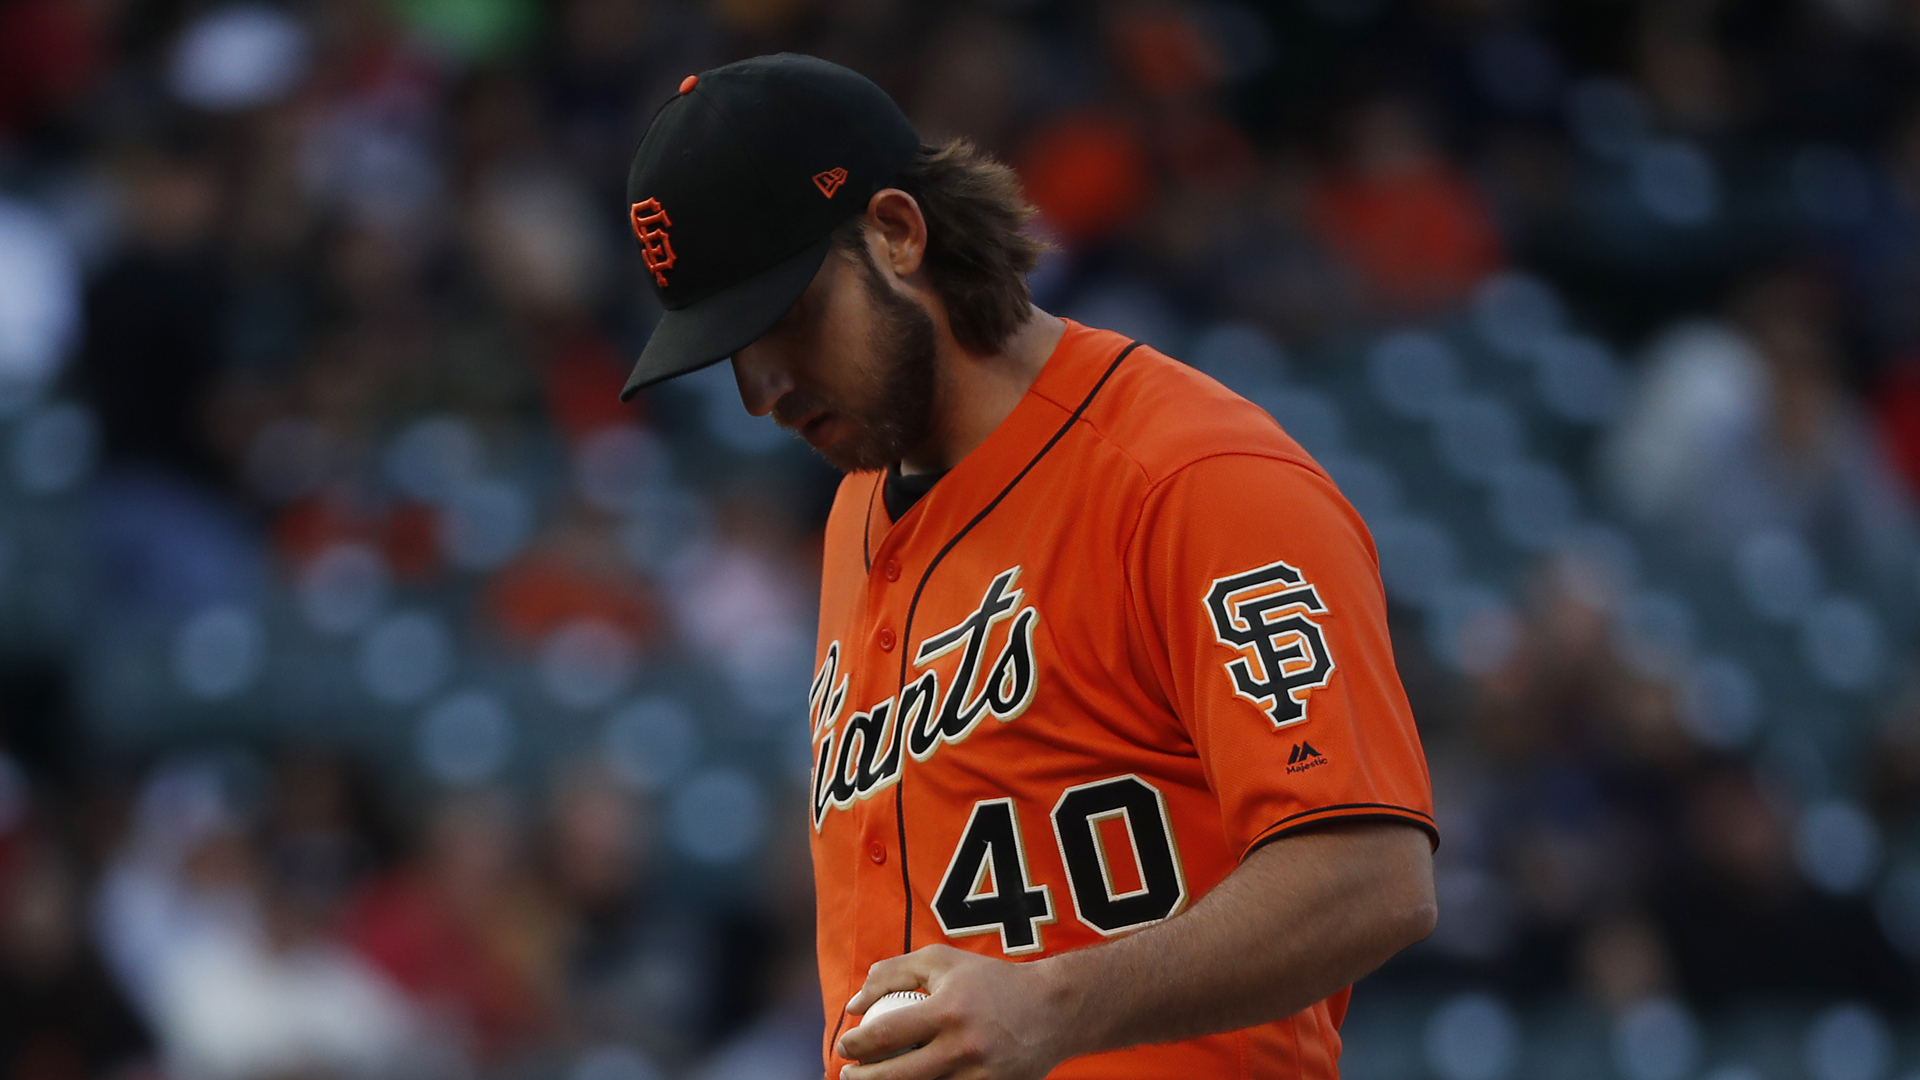 Madison Bumgarner: Expected to miss 6-8 weeks